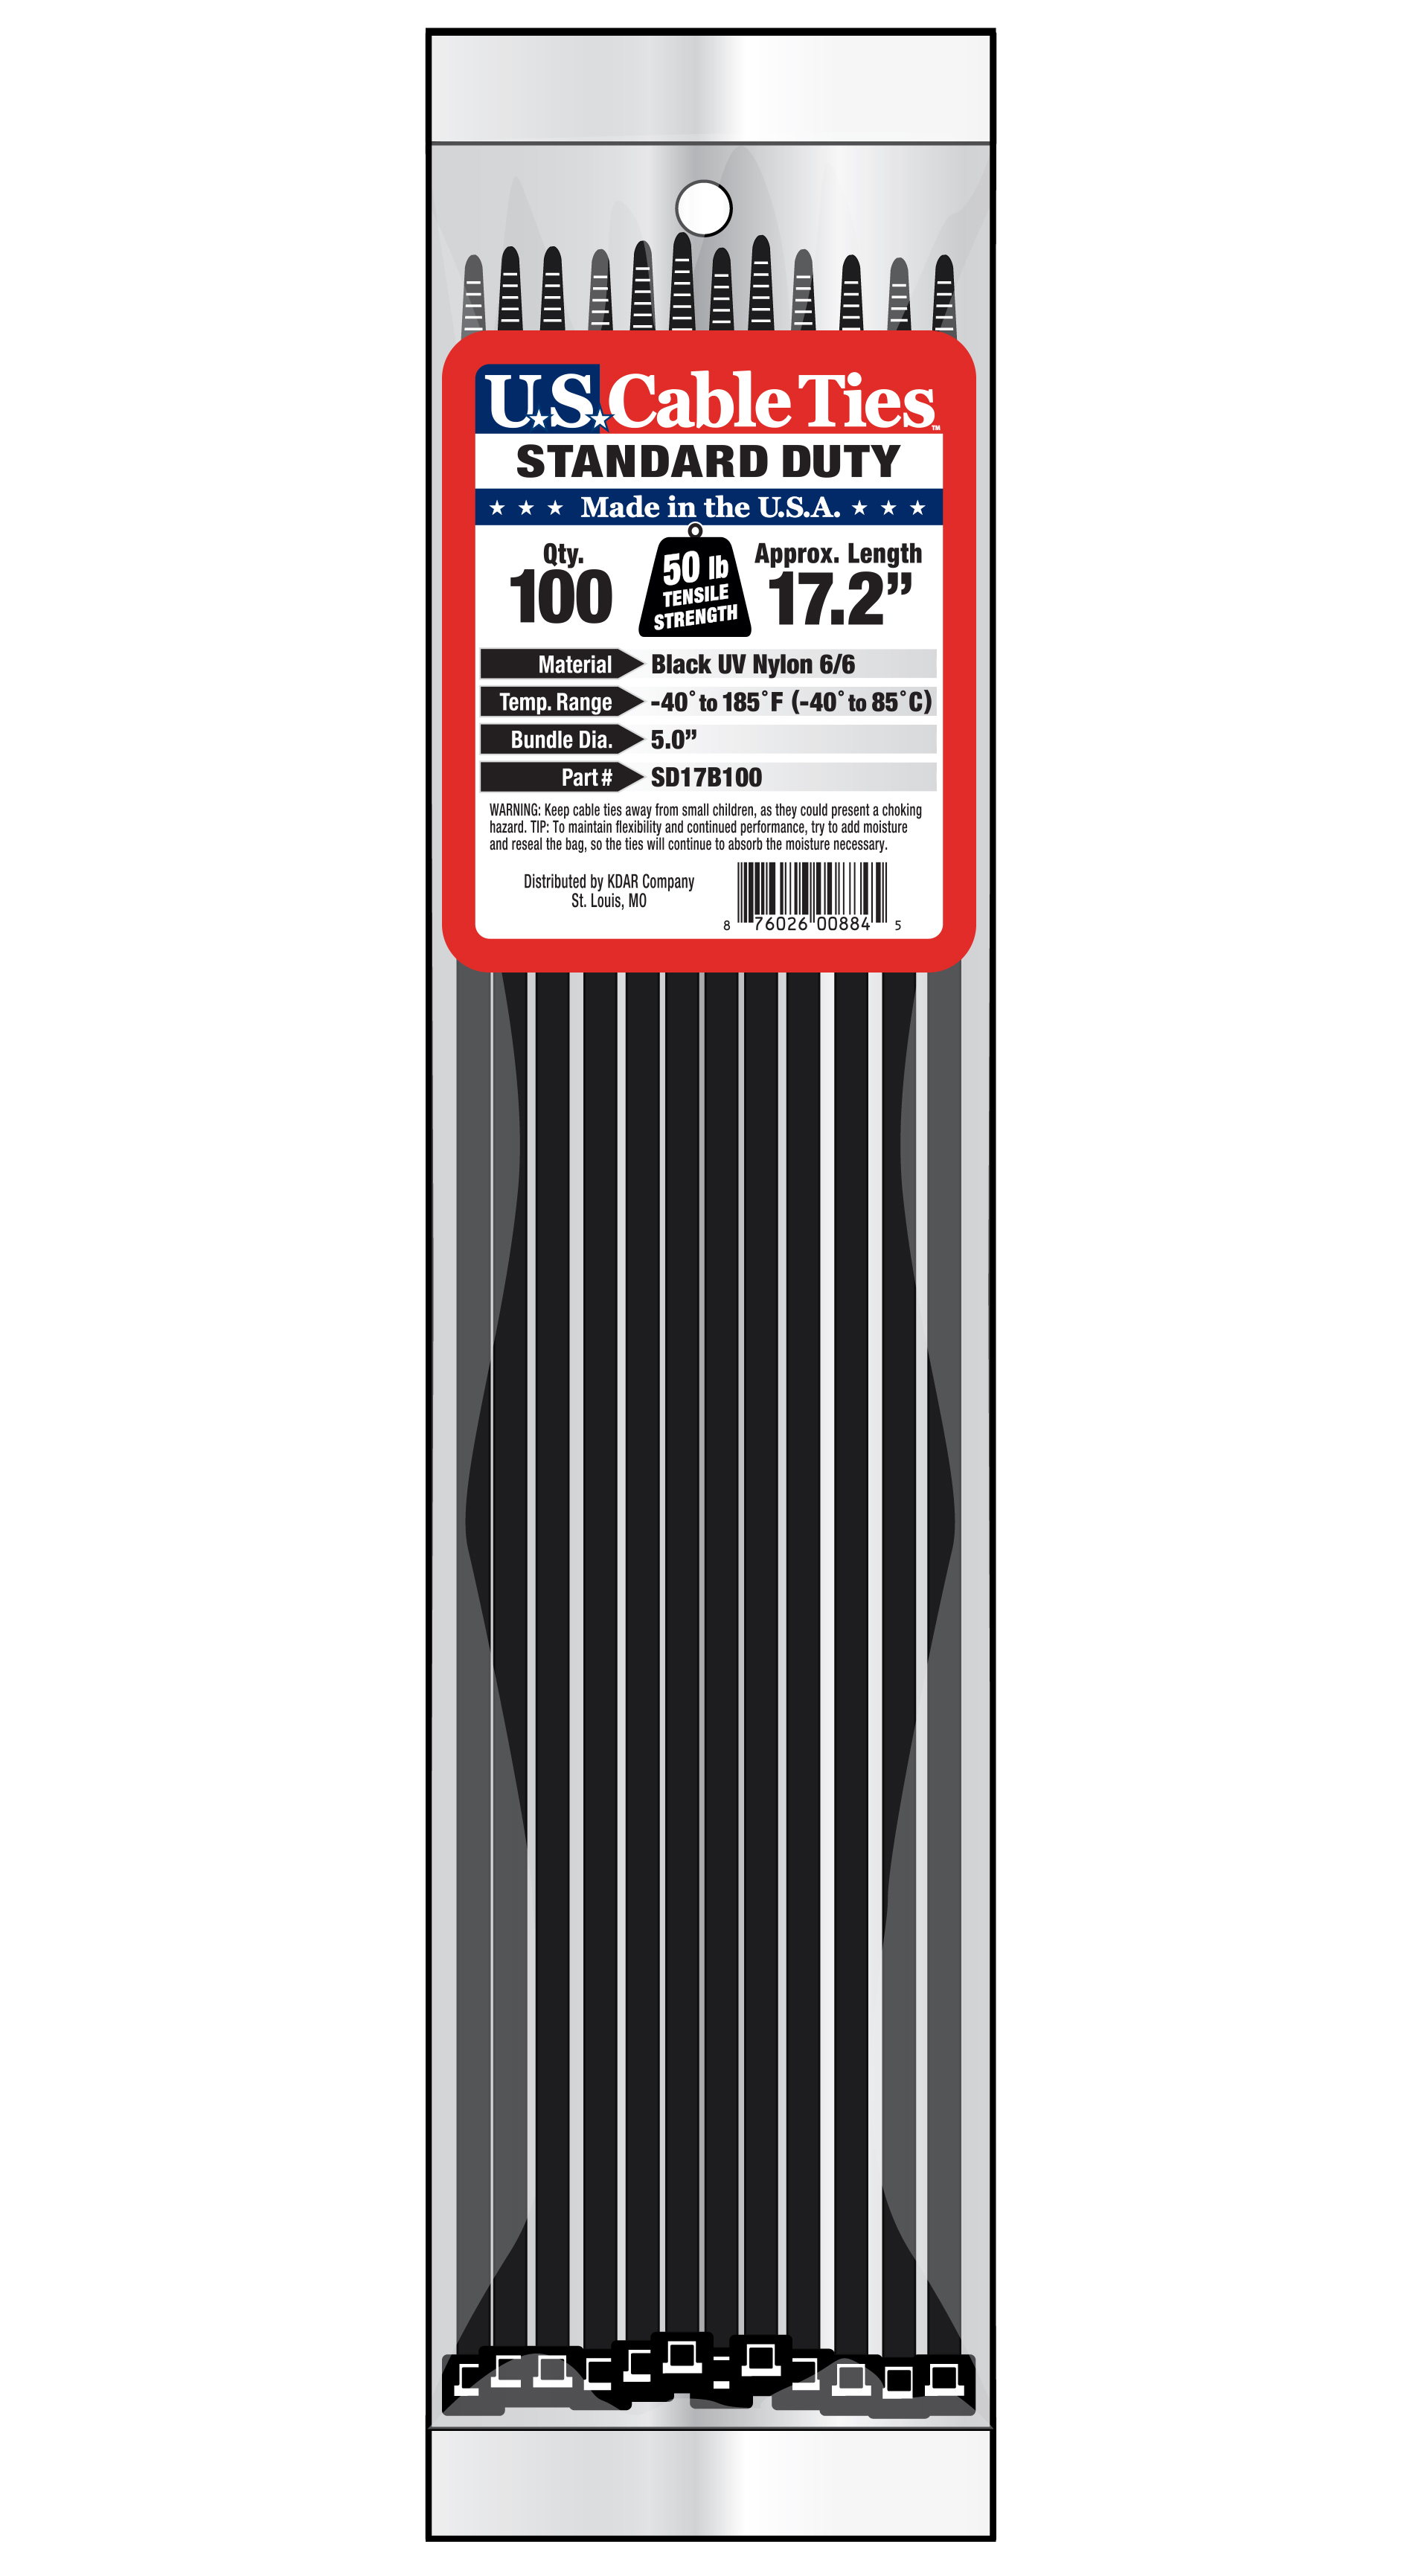 067dcab2f7e4 US Cable Ties SD17B100 17 Inch Standard Duty Cable Ties, UV Black, 100 Pack